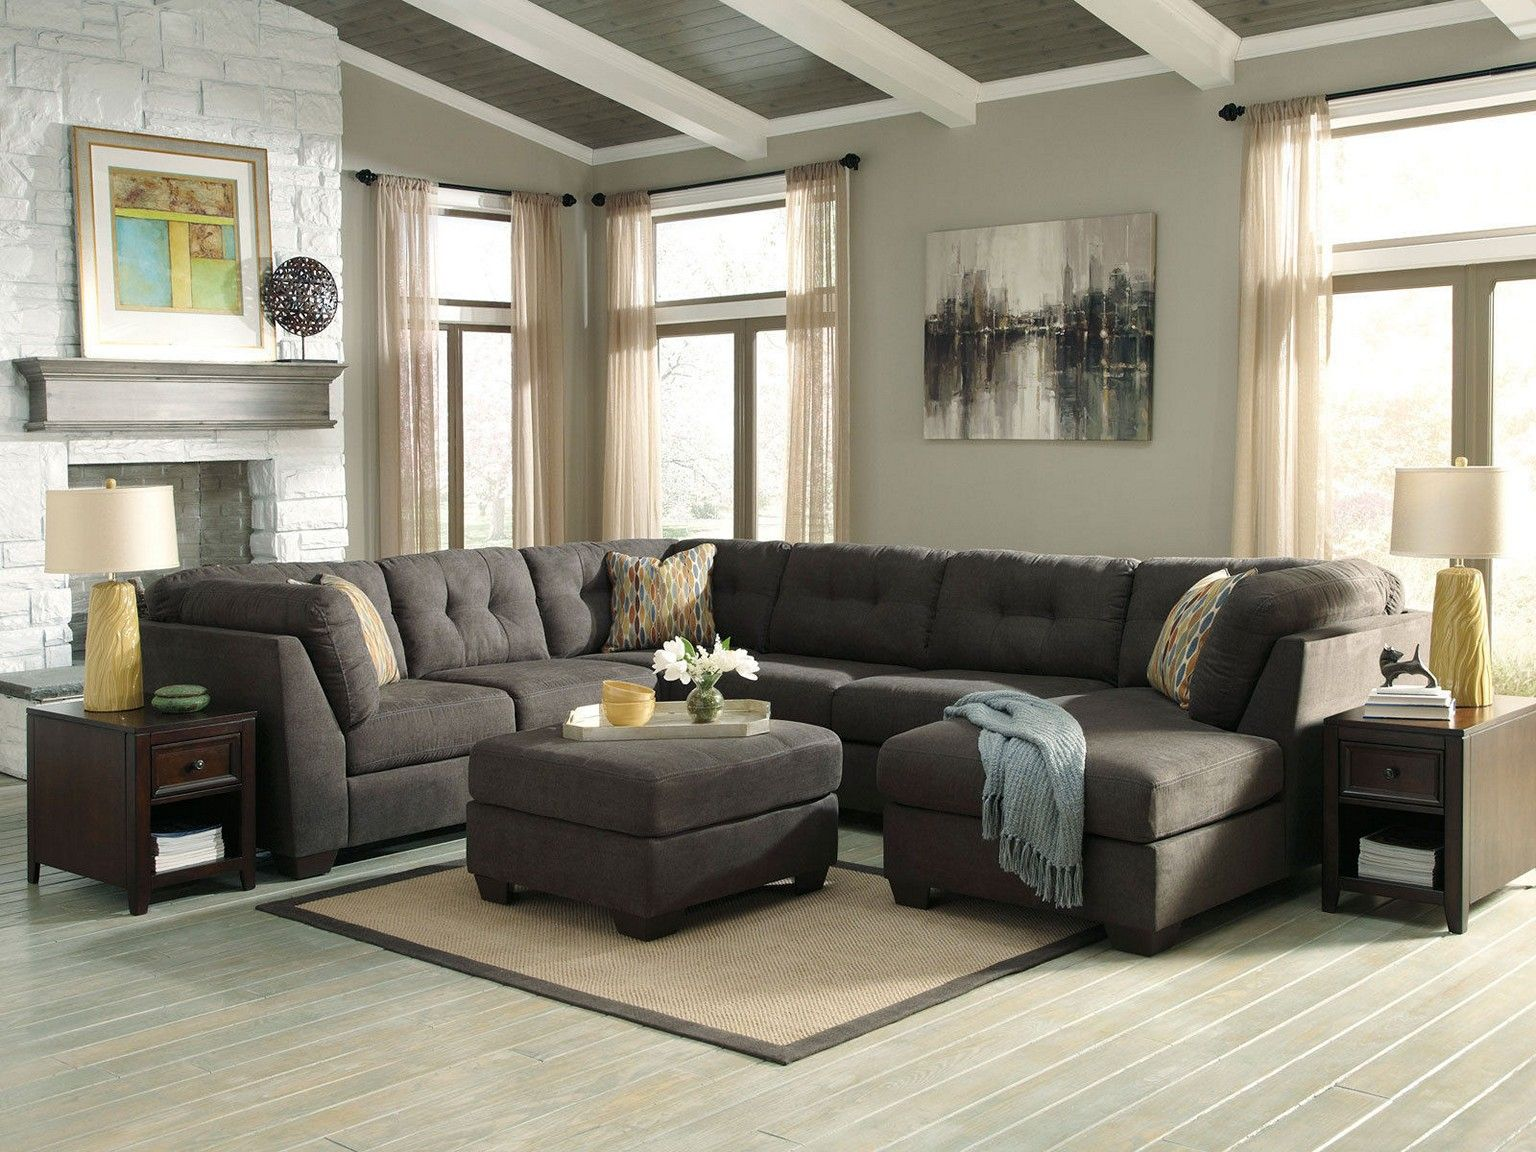 Cozy Cottage Living Room Ideas Pictures   Cosy lounge ...